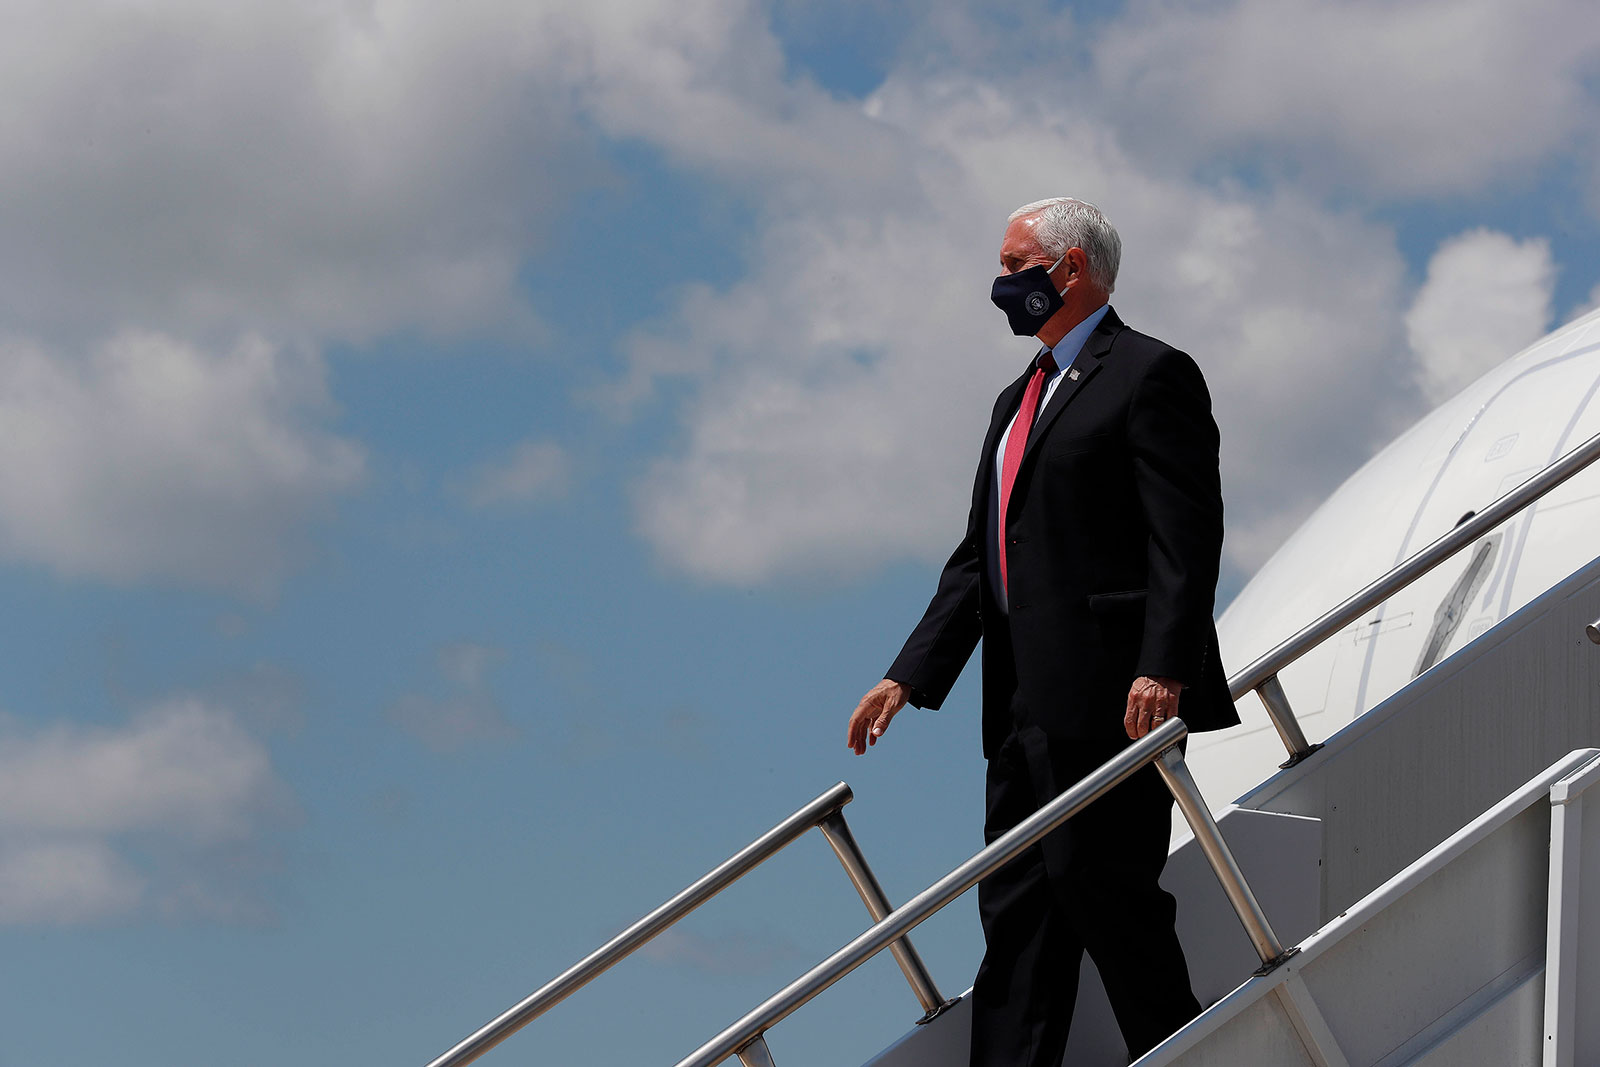 Vice President Mike Pence arrives at Raleigh-Durham International Airport on Wednesday, July 29.